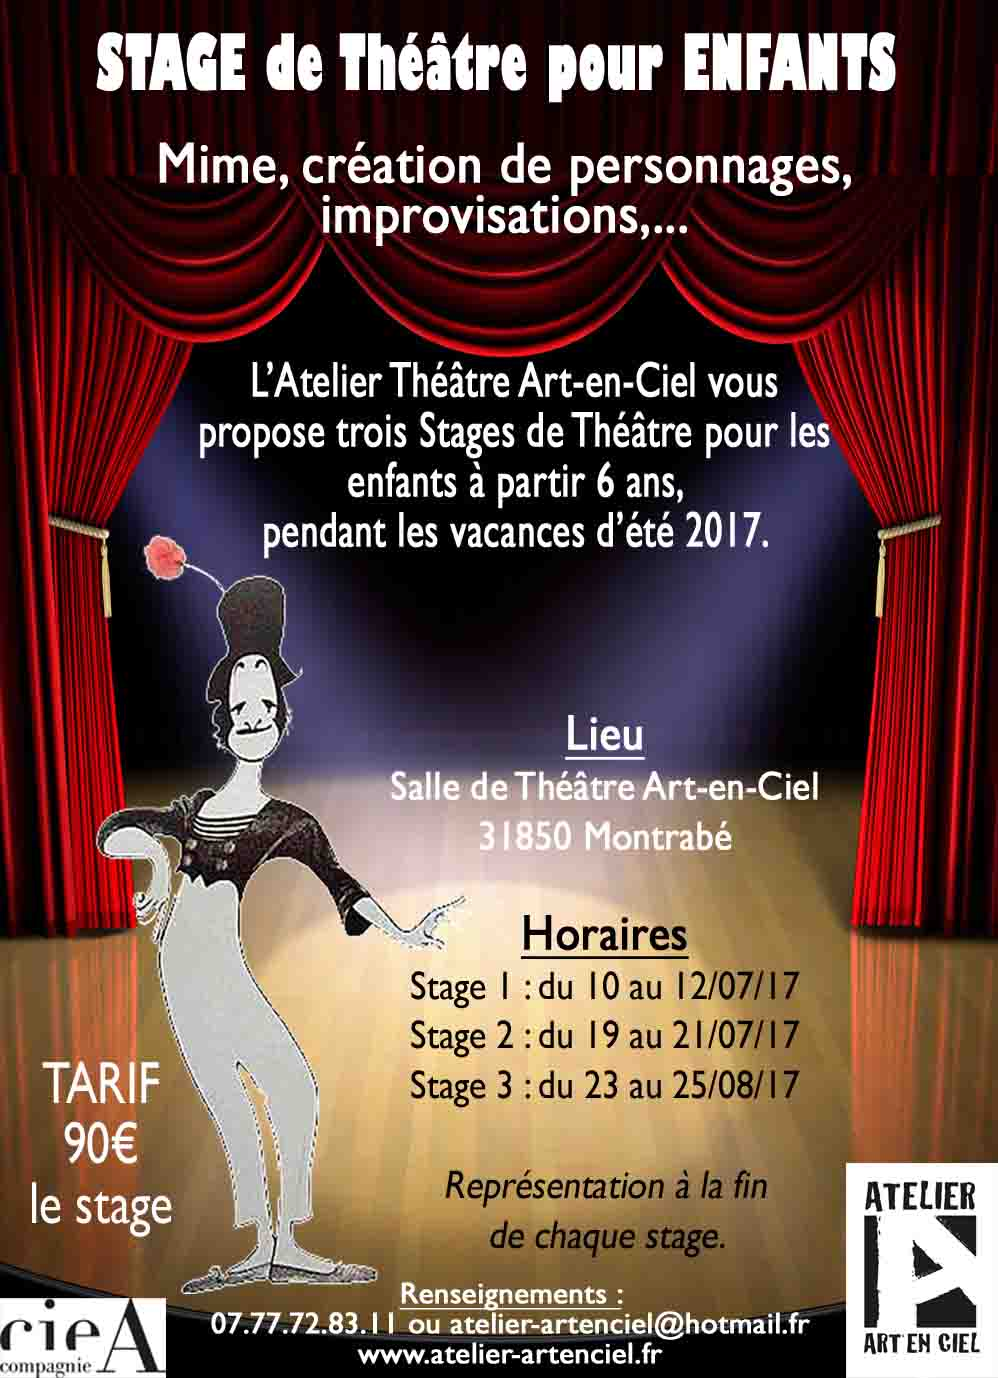 stage-tha-copy-a-cent-tre-enfants-vacances-a-copy-ta-copy-2017-a-nbsp-toulouse-31850-